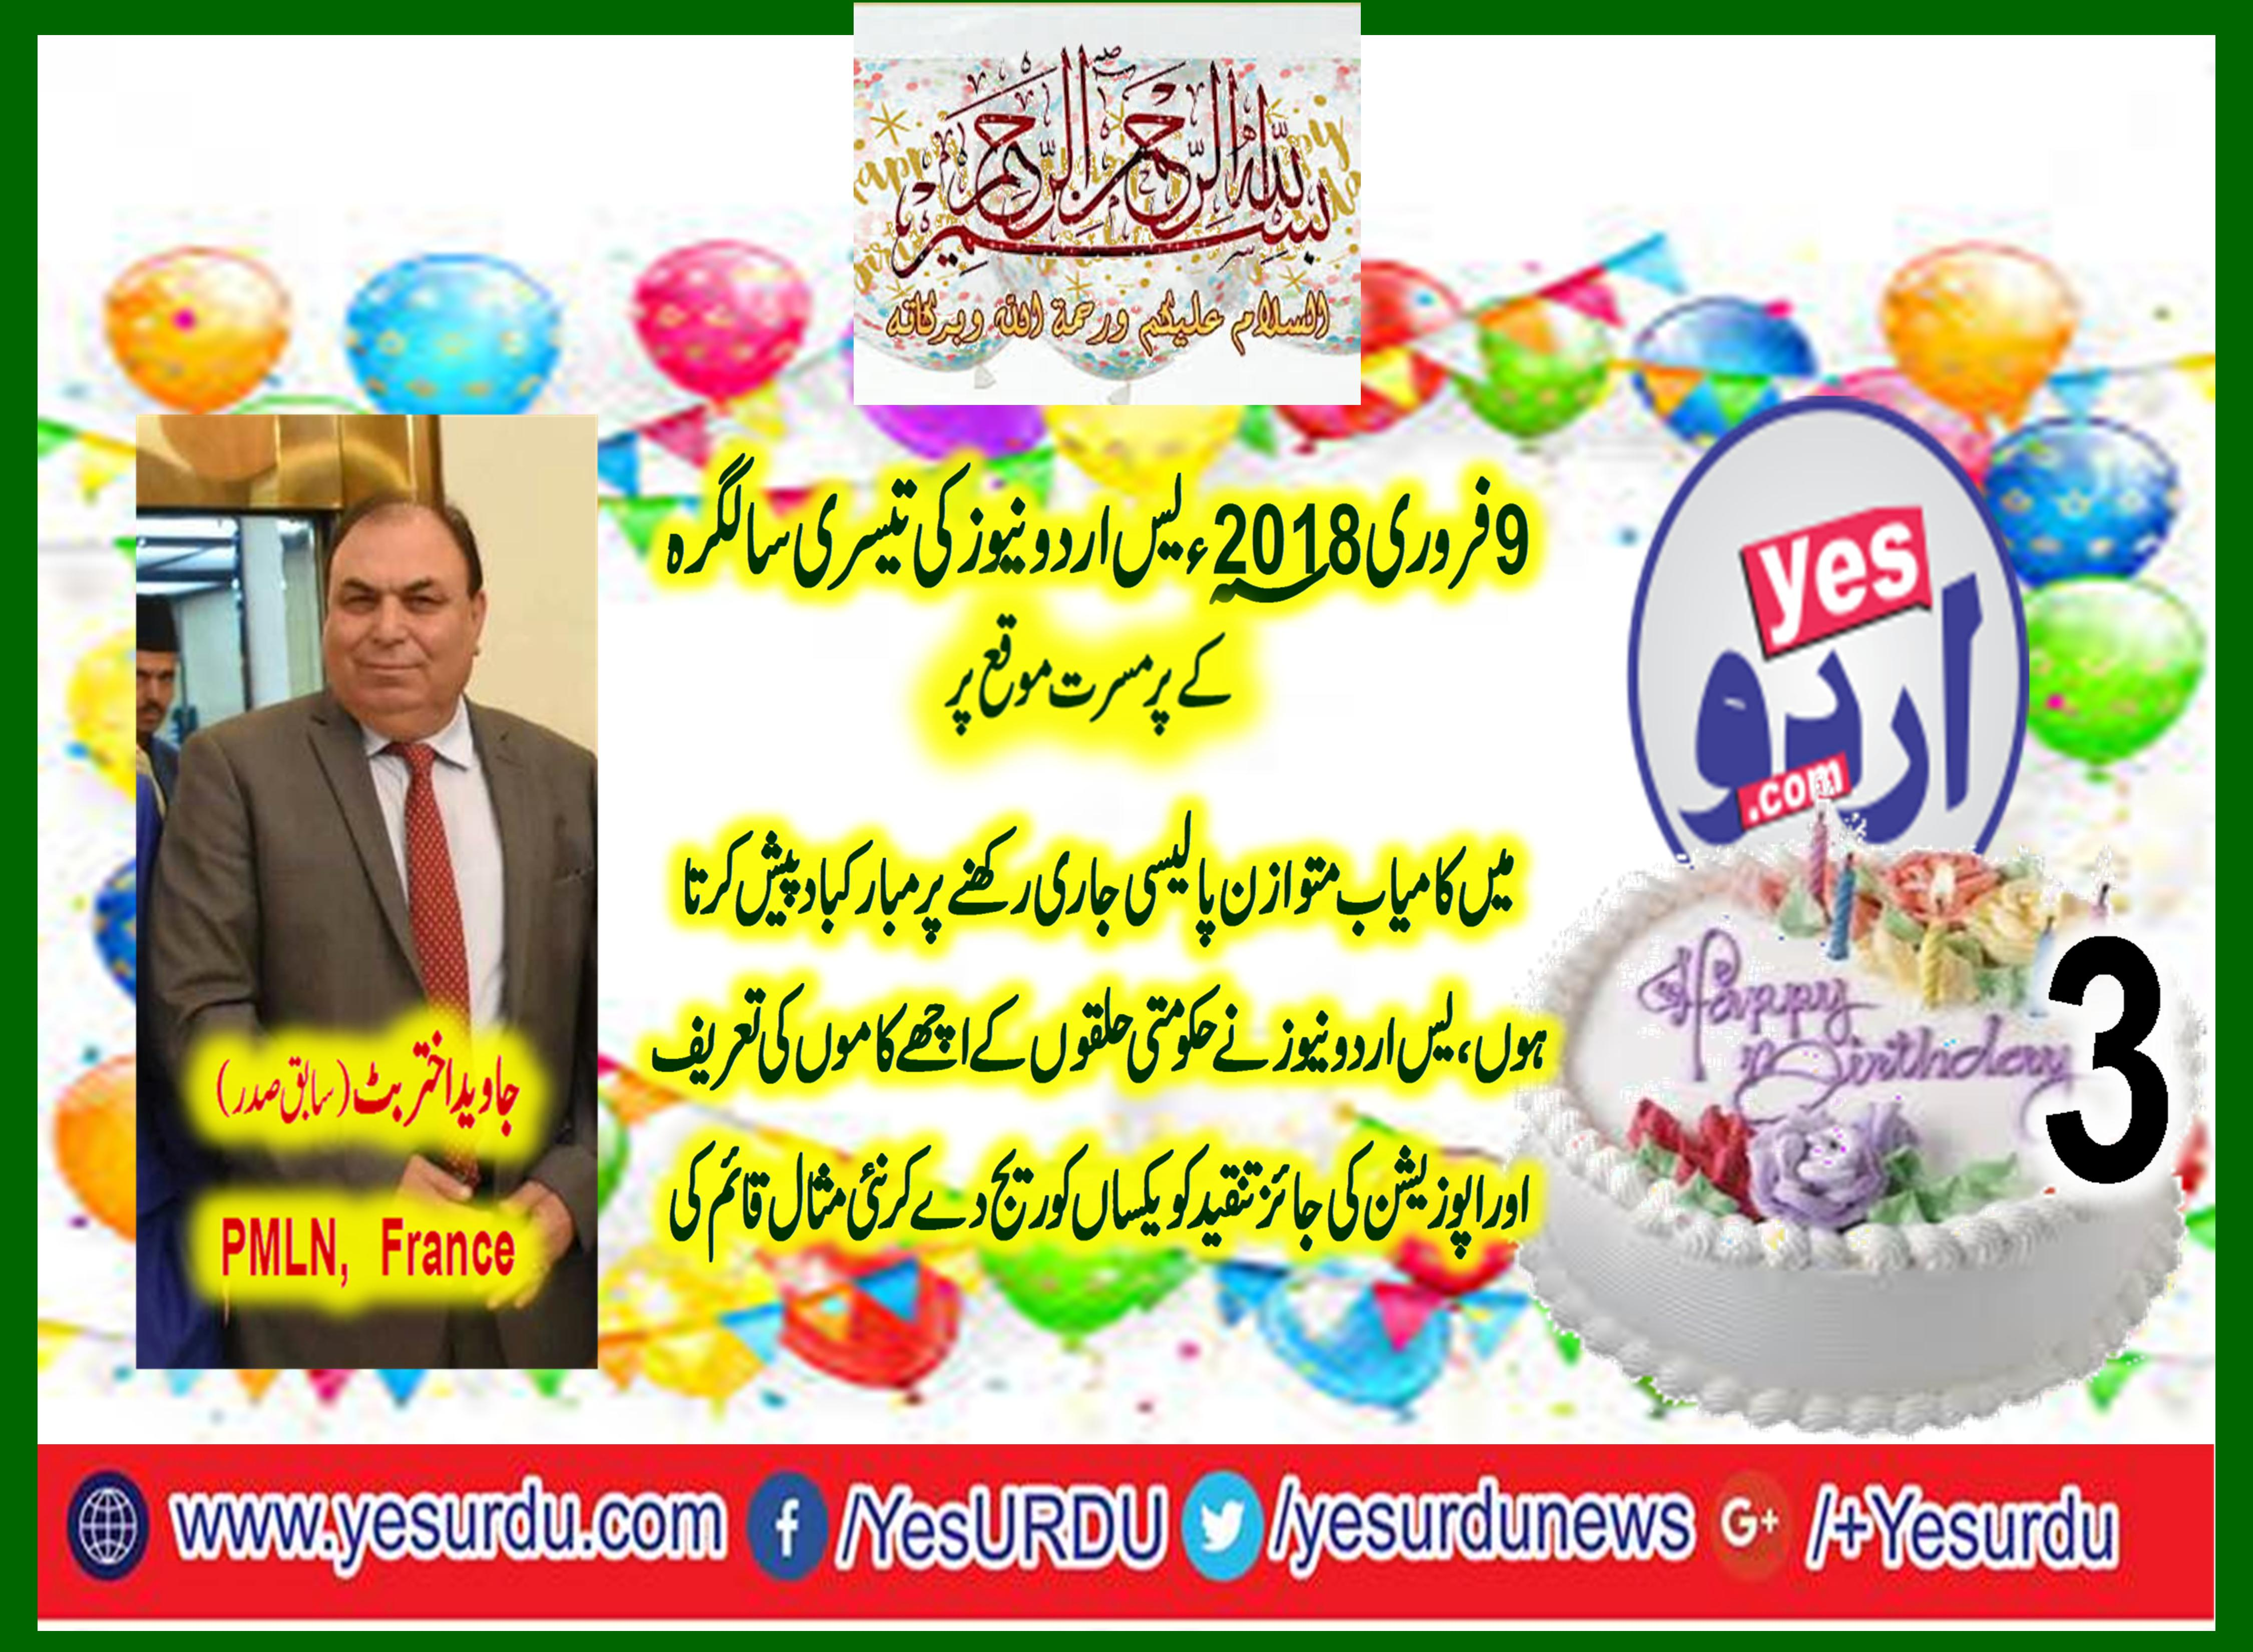 THIRD, BIRTHDAY, OF, YES URDU, NEWS, QARI FAROOQ AHMED, MANAGING, EDITOR, SENT, THE, MESSAGE, TO, READERS, AND, STAFF, OF, YES URDU, NEWS, ON, GREAT, DEDICATION, AND, HARD, WORK، BY, IBRAR KAYANI, SENIOR, LEADER, PTI, FRANCE, JAVED AKHTAR BUTT, PRESIDENT, PMLN, FRANCE